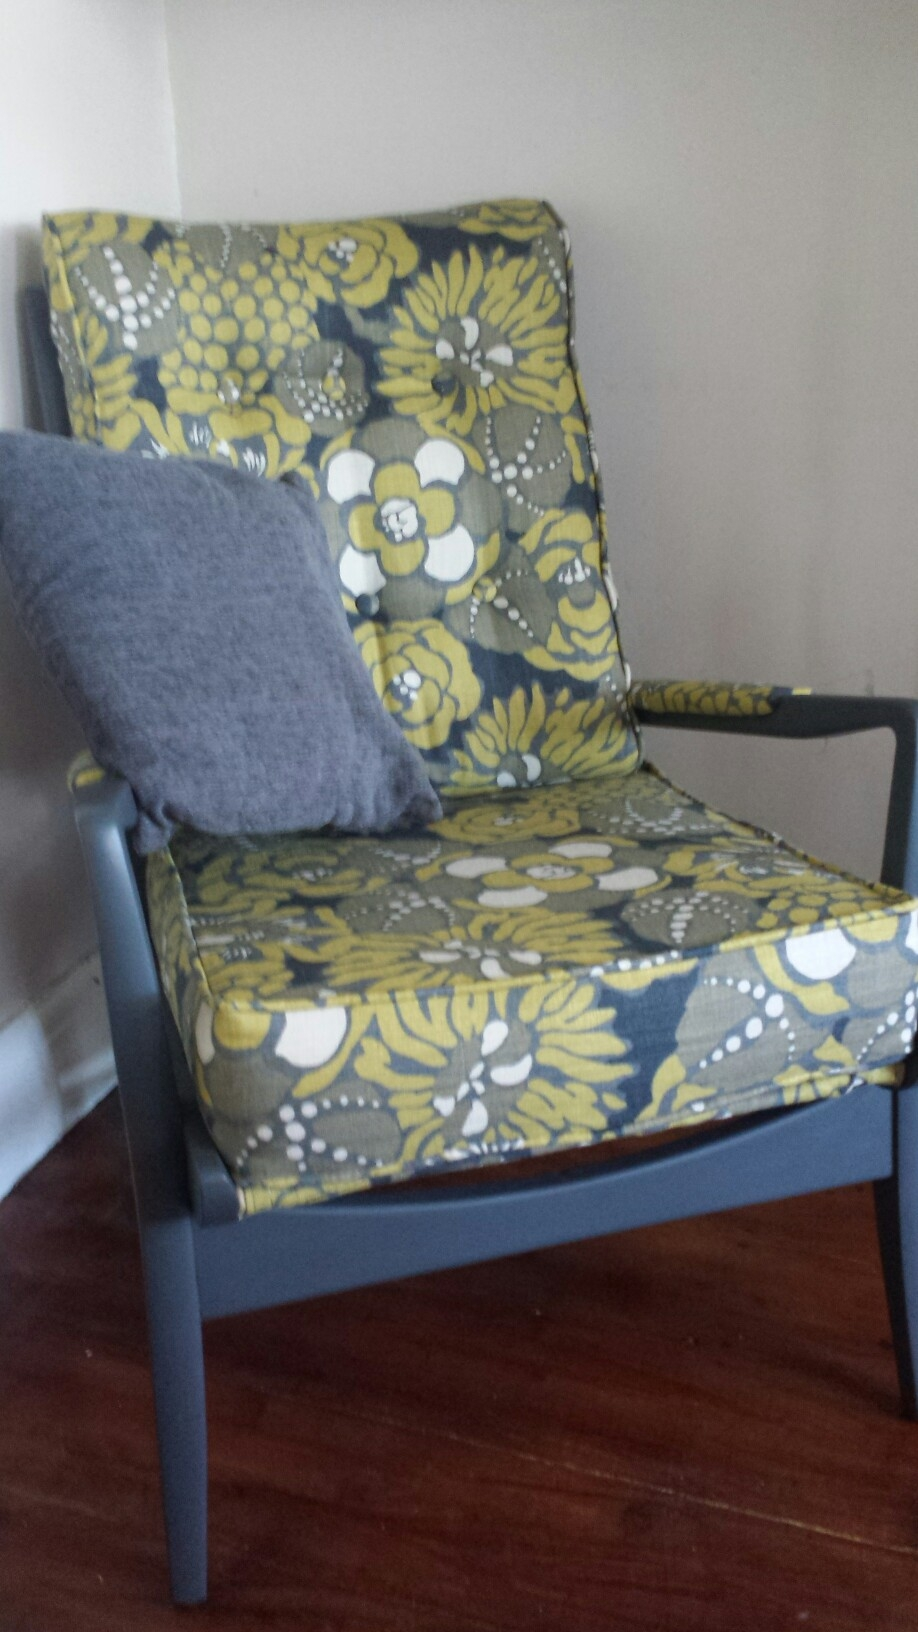 Excellent Widely Used Cintique Chair Covers Inside Grandads Old Cintique Chair Continue Chair Pinterest (Image 5 of 15)